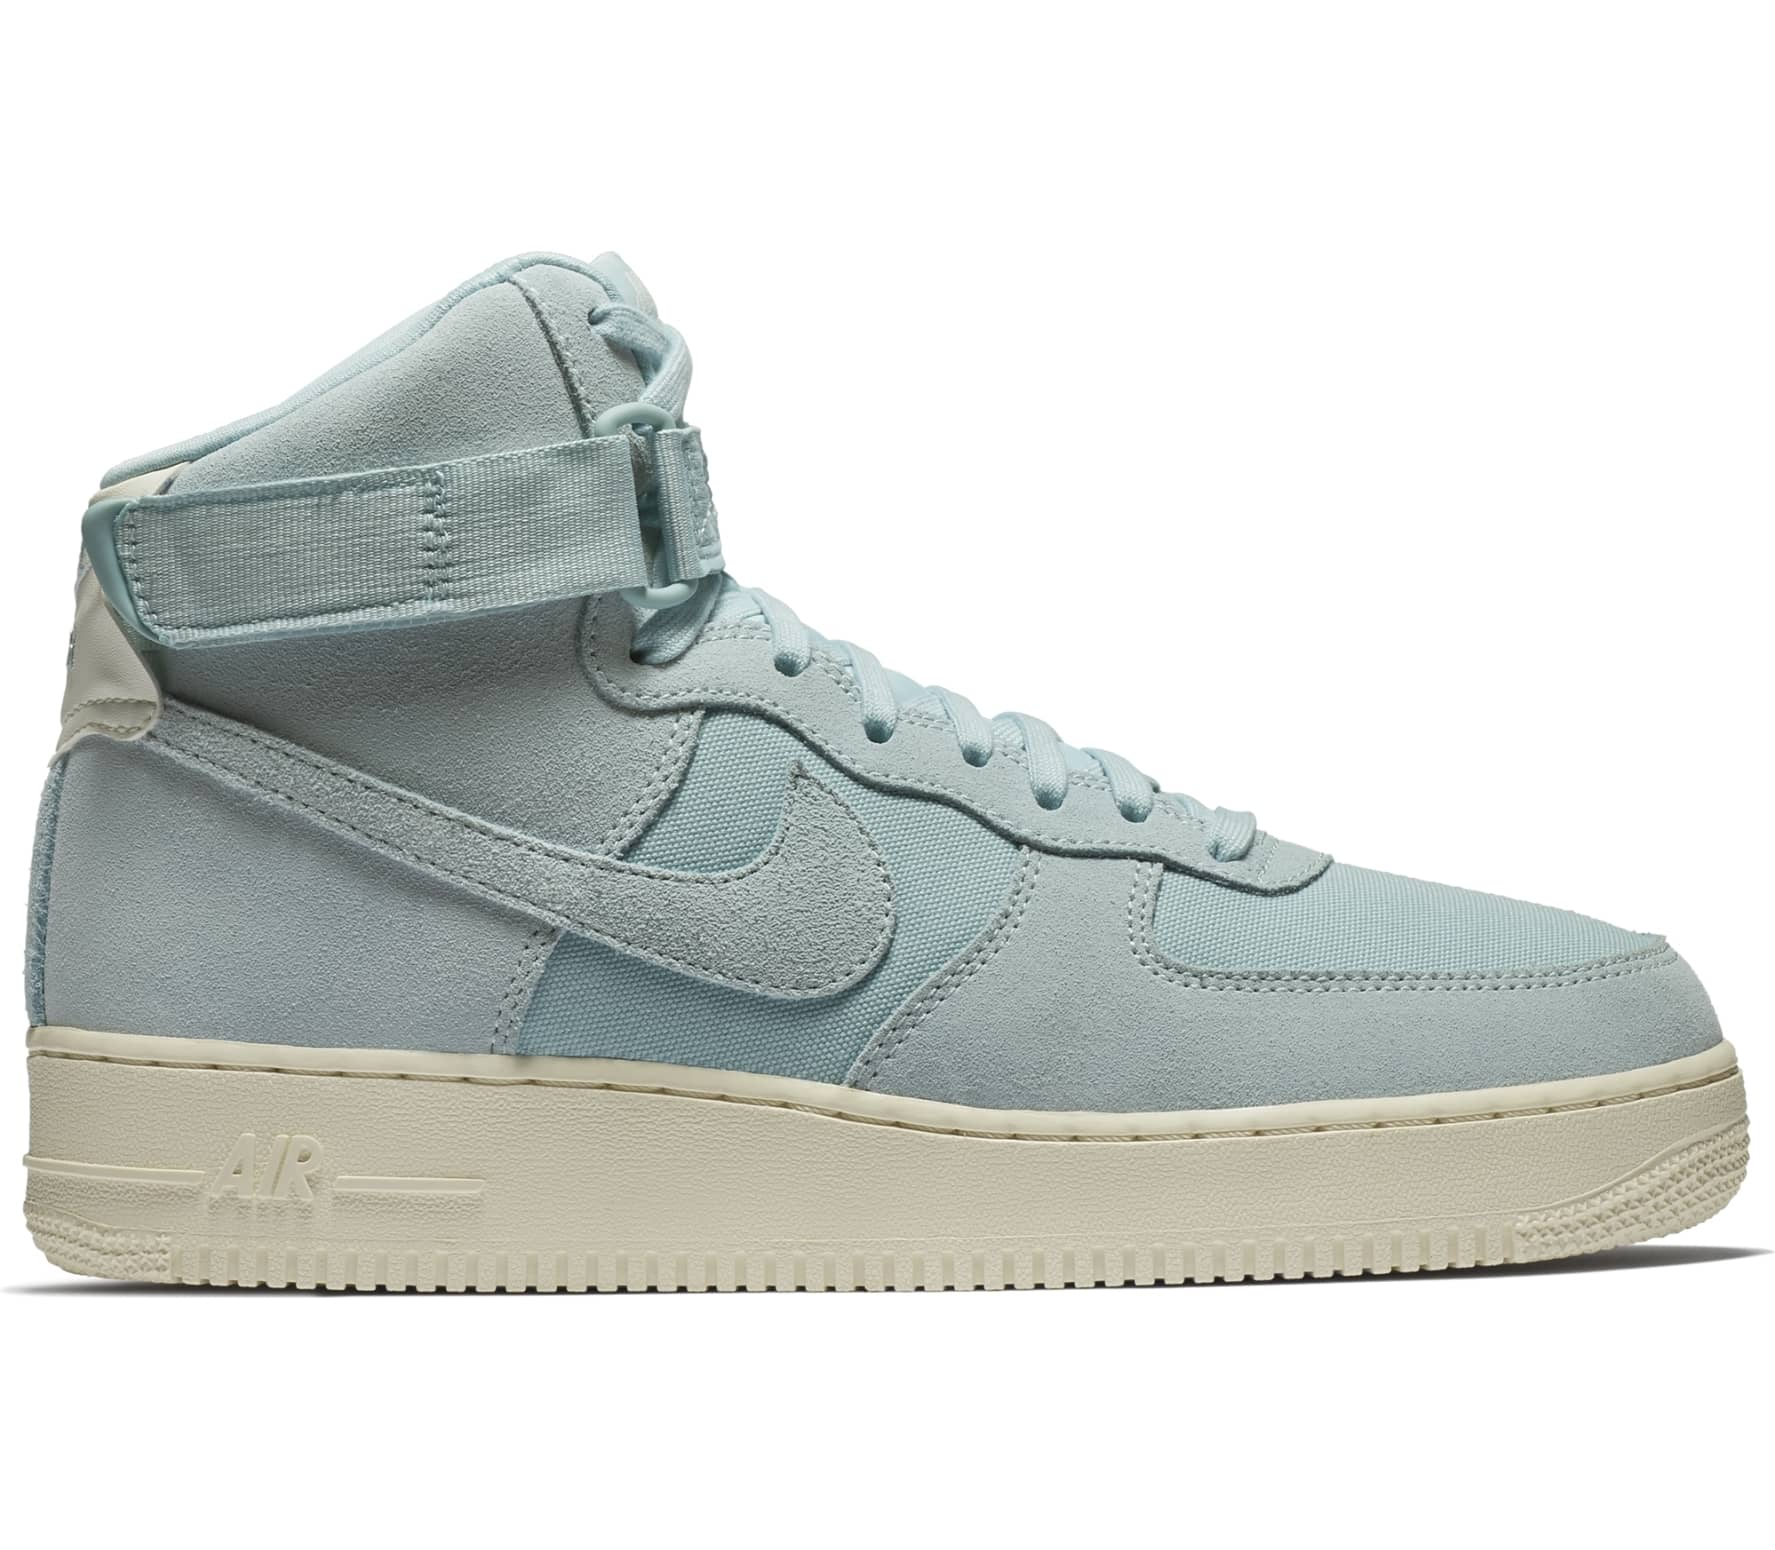 Nike Sportswear Air Force 1 High '07 Suede Herren Sneaker türkis